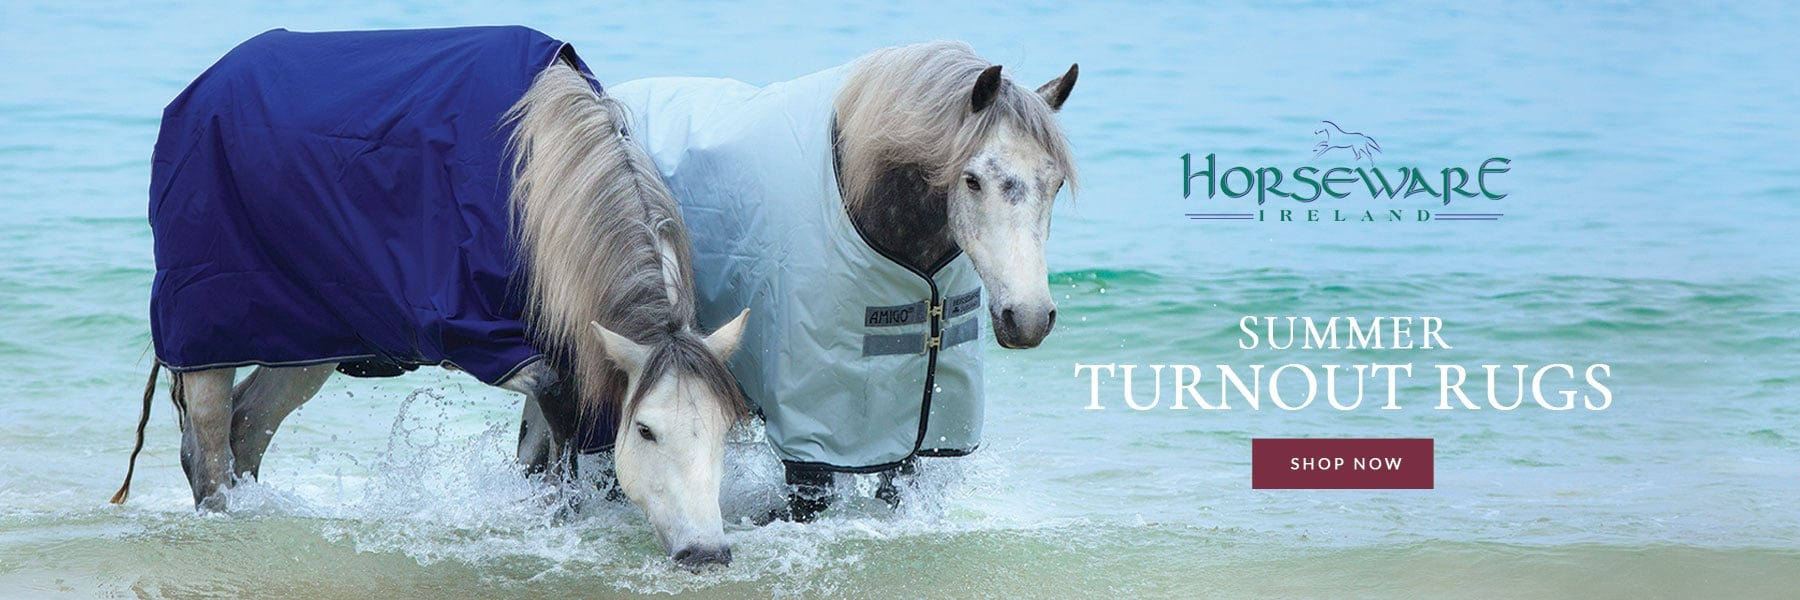 Summer Turnout Rugs